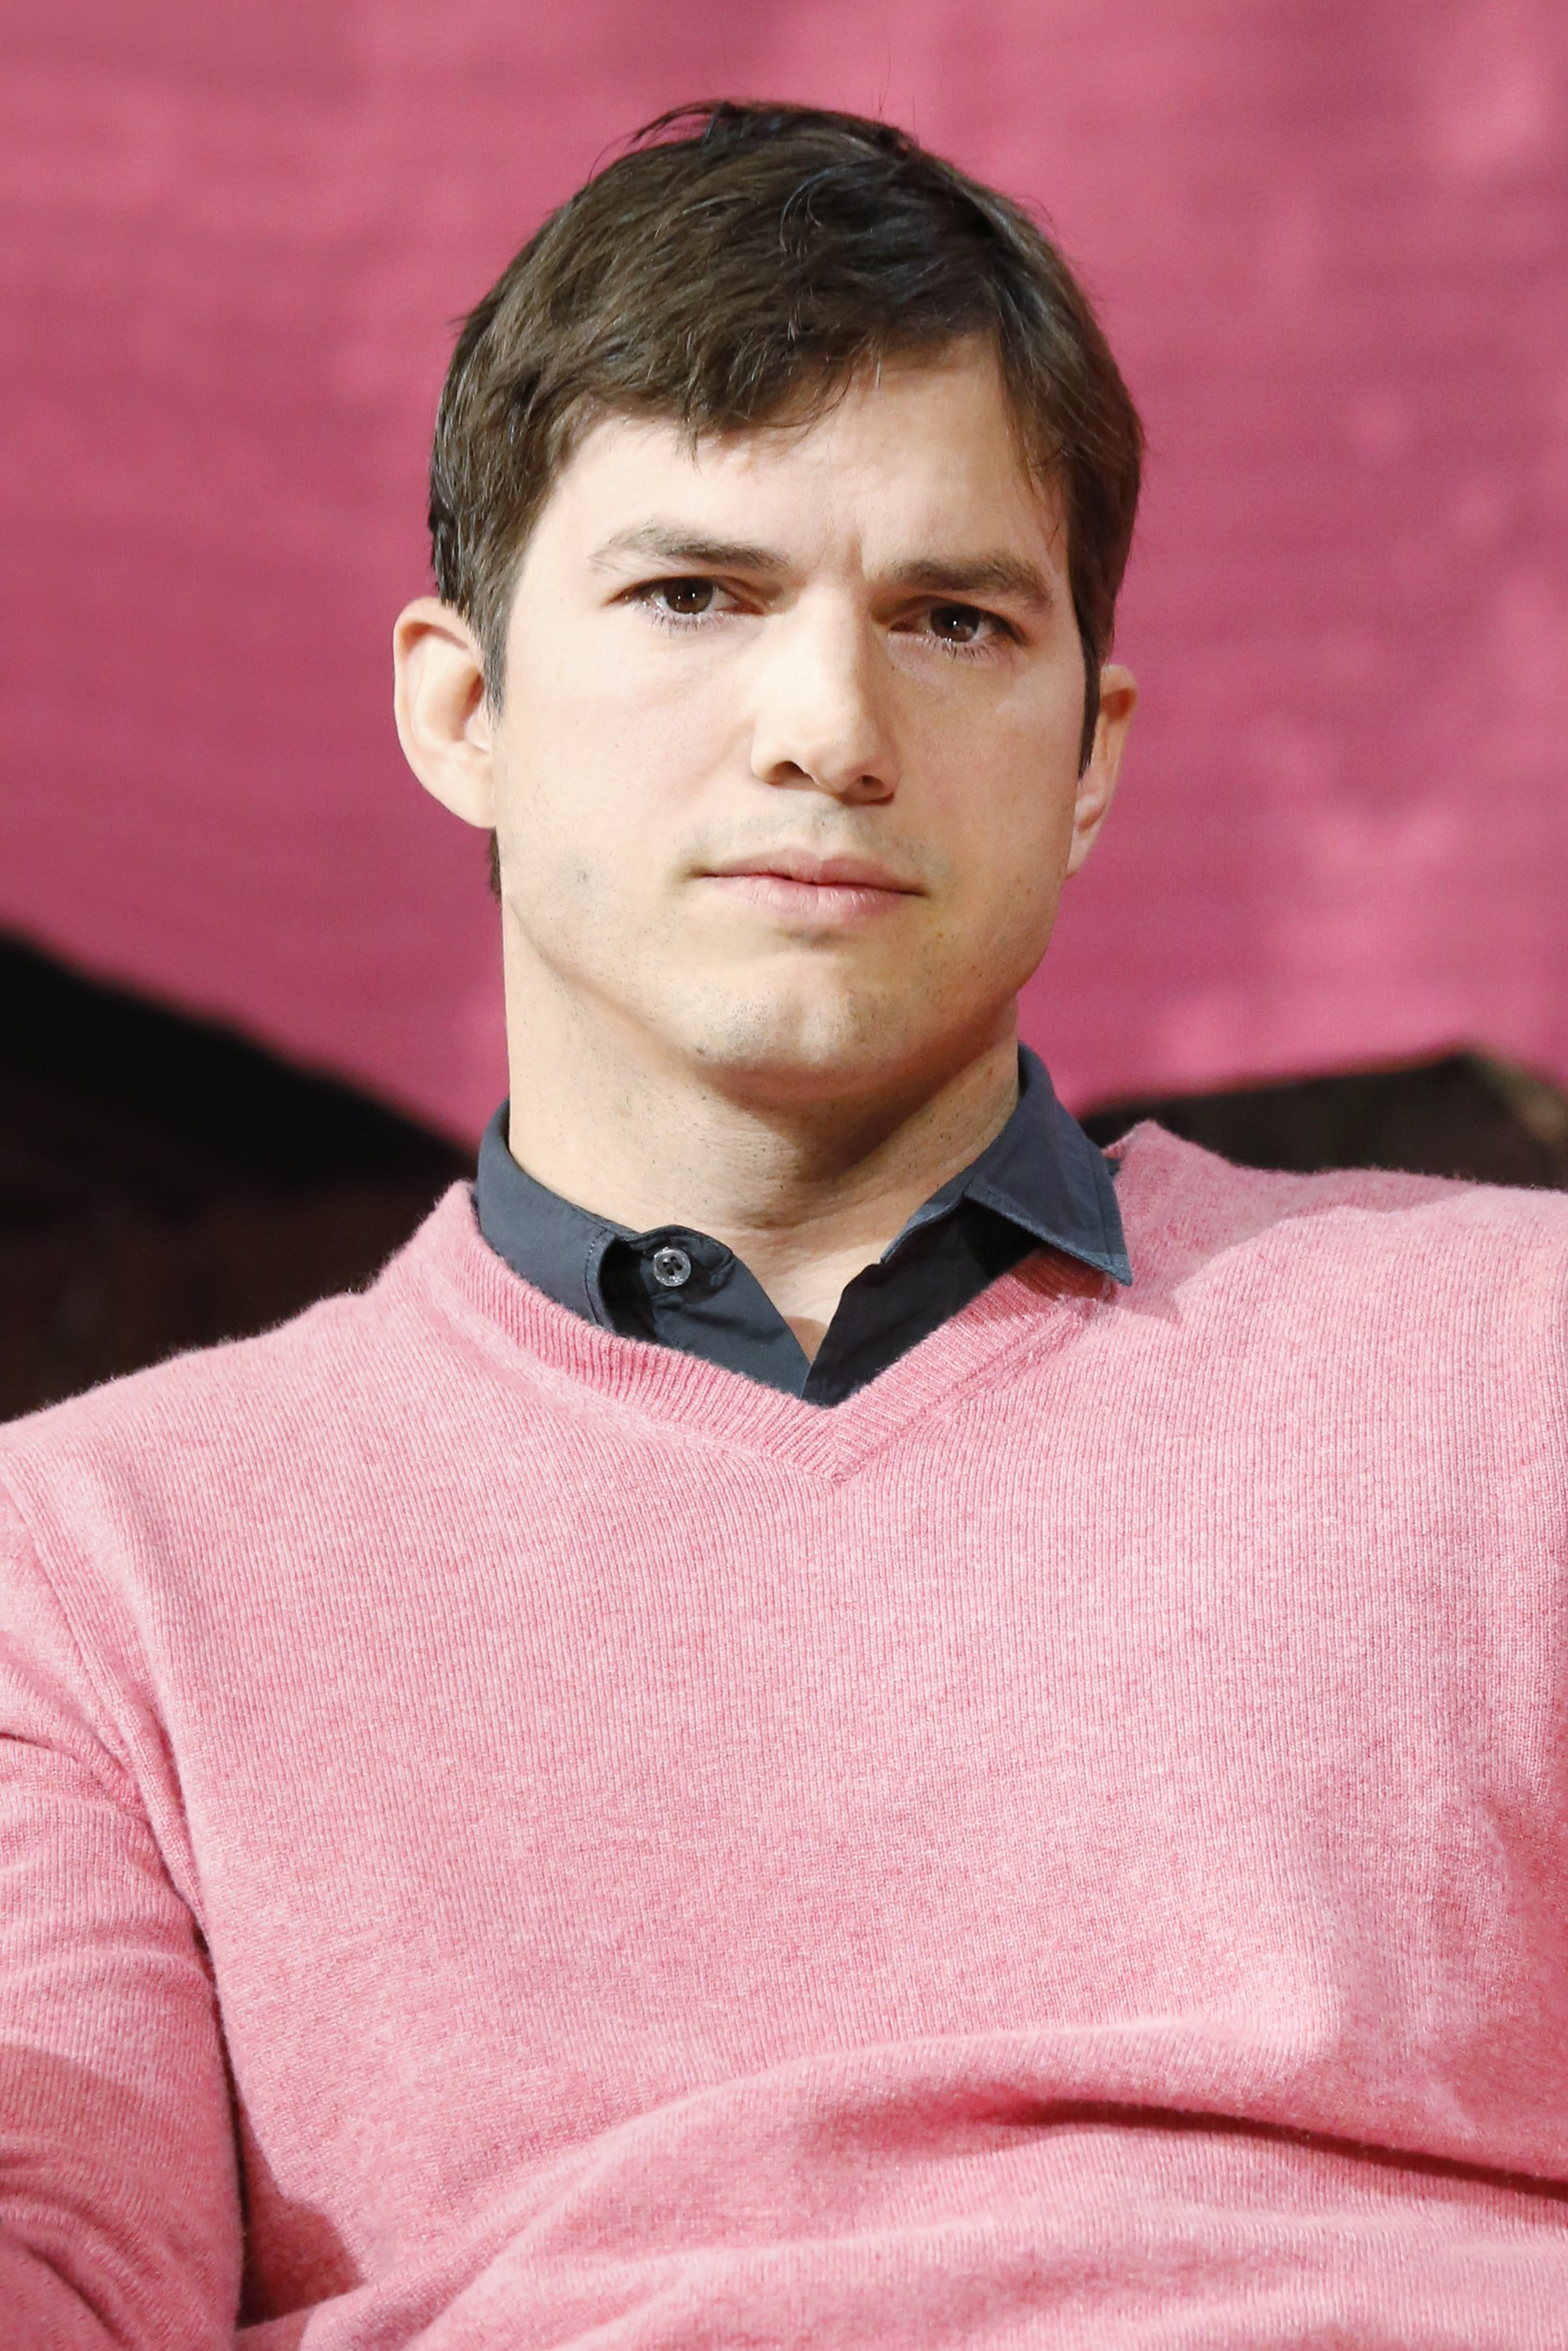 Ashton Kutcher appears on stage during the 'The Game Plan: Strategies for Entrepreneurs' Airbnb Open 2016 on November 19, 2016 in Los Angeles, California. | Source: Getty Images.